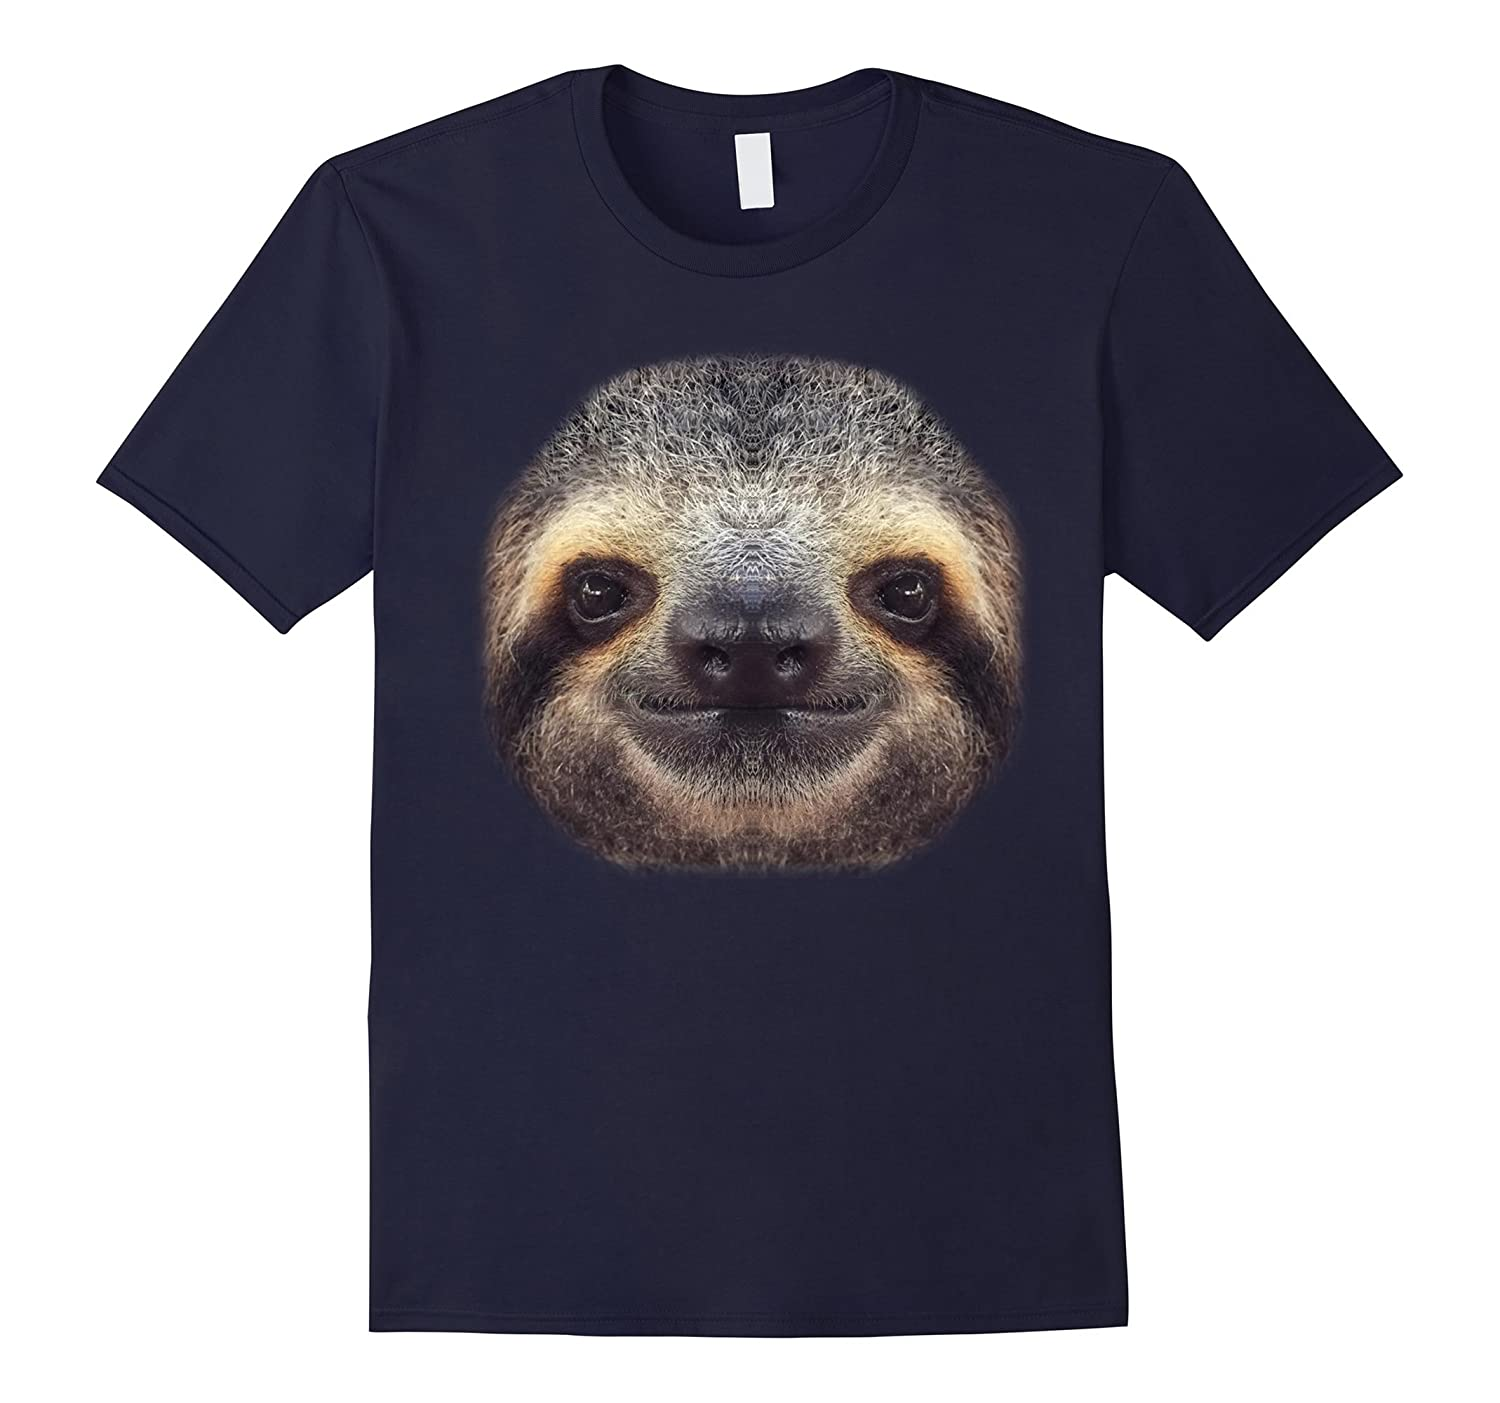 Sloth Shirts - Funny Sloth Face T shirts-PL